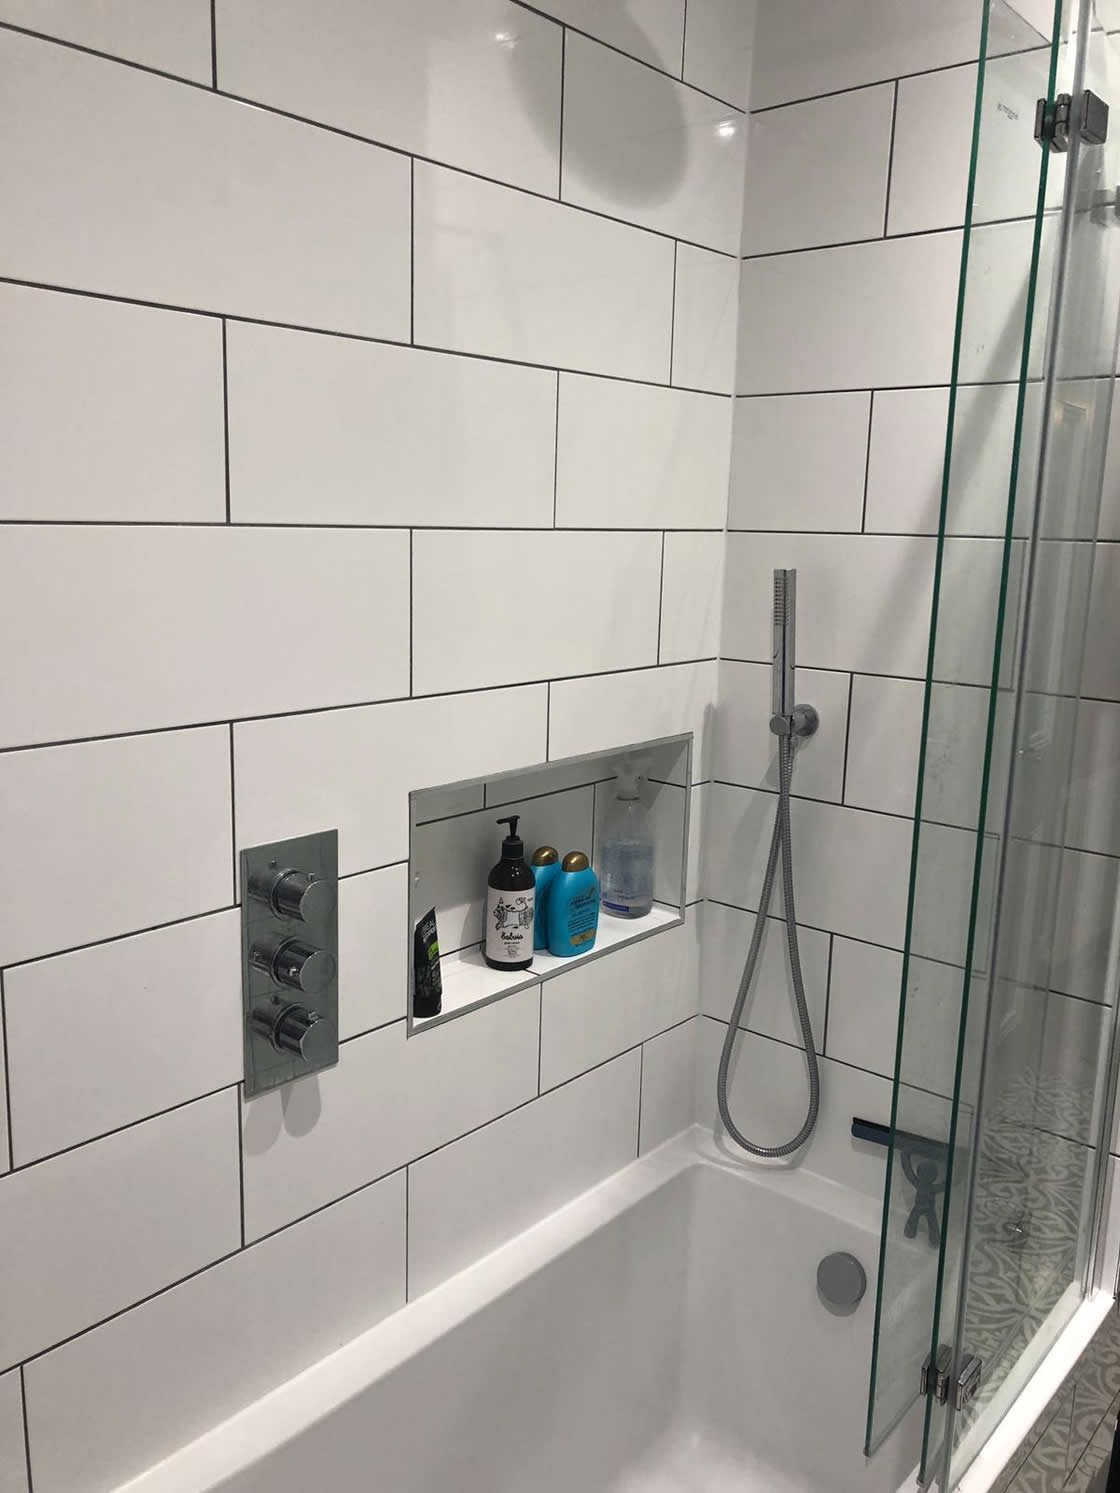 Built in Shower and Shelf - Deerings Road in Redhill